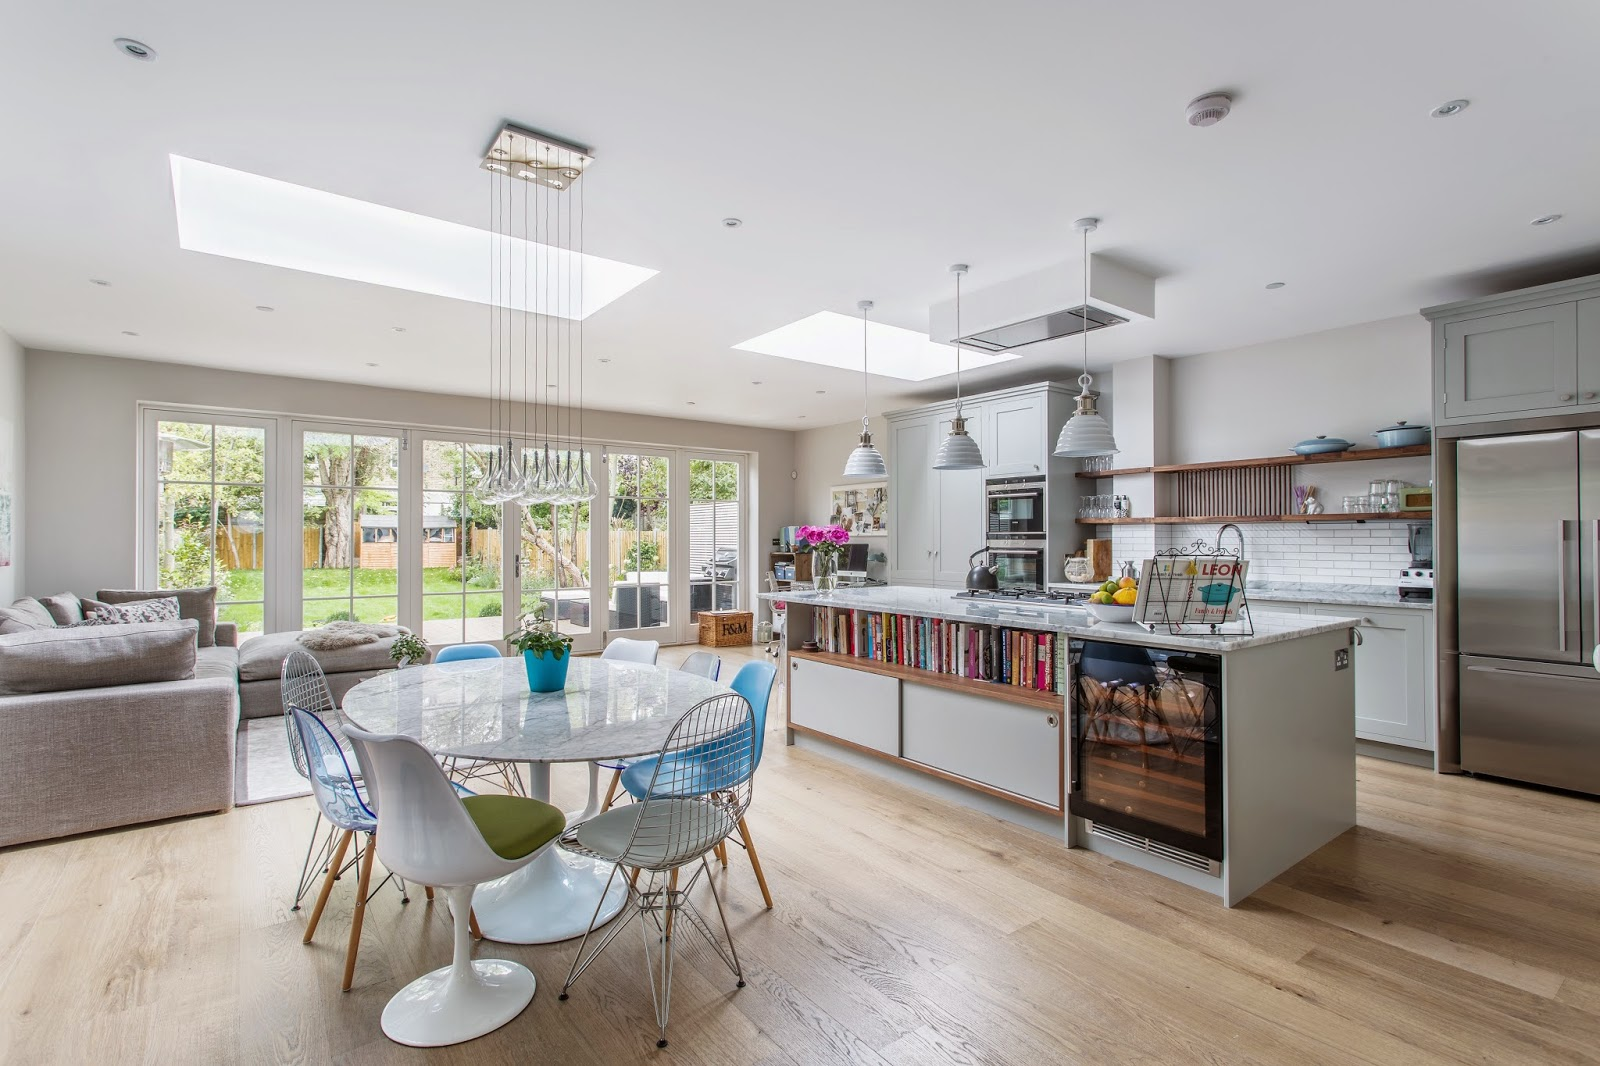 Kitchen Design, South-West London Home